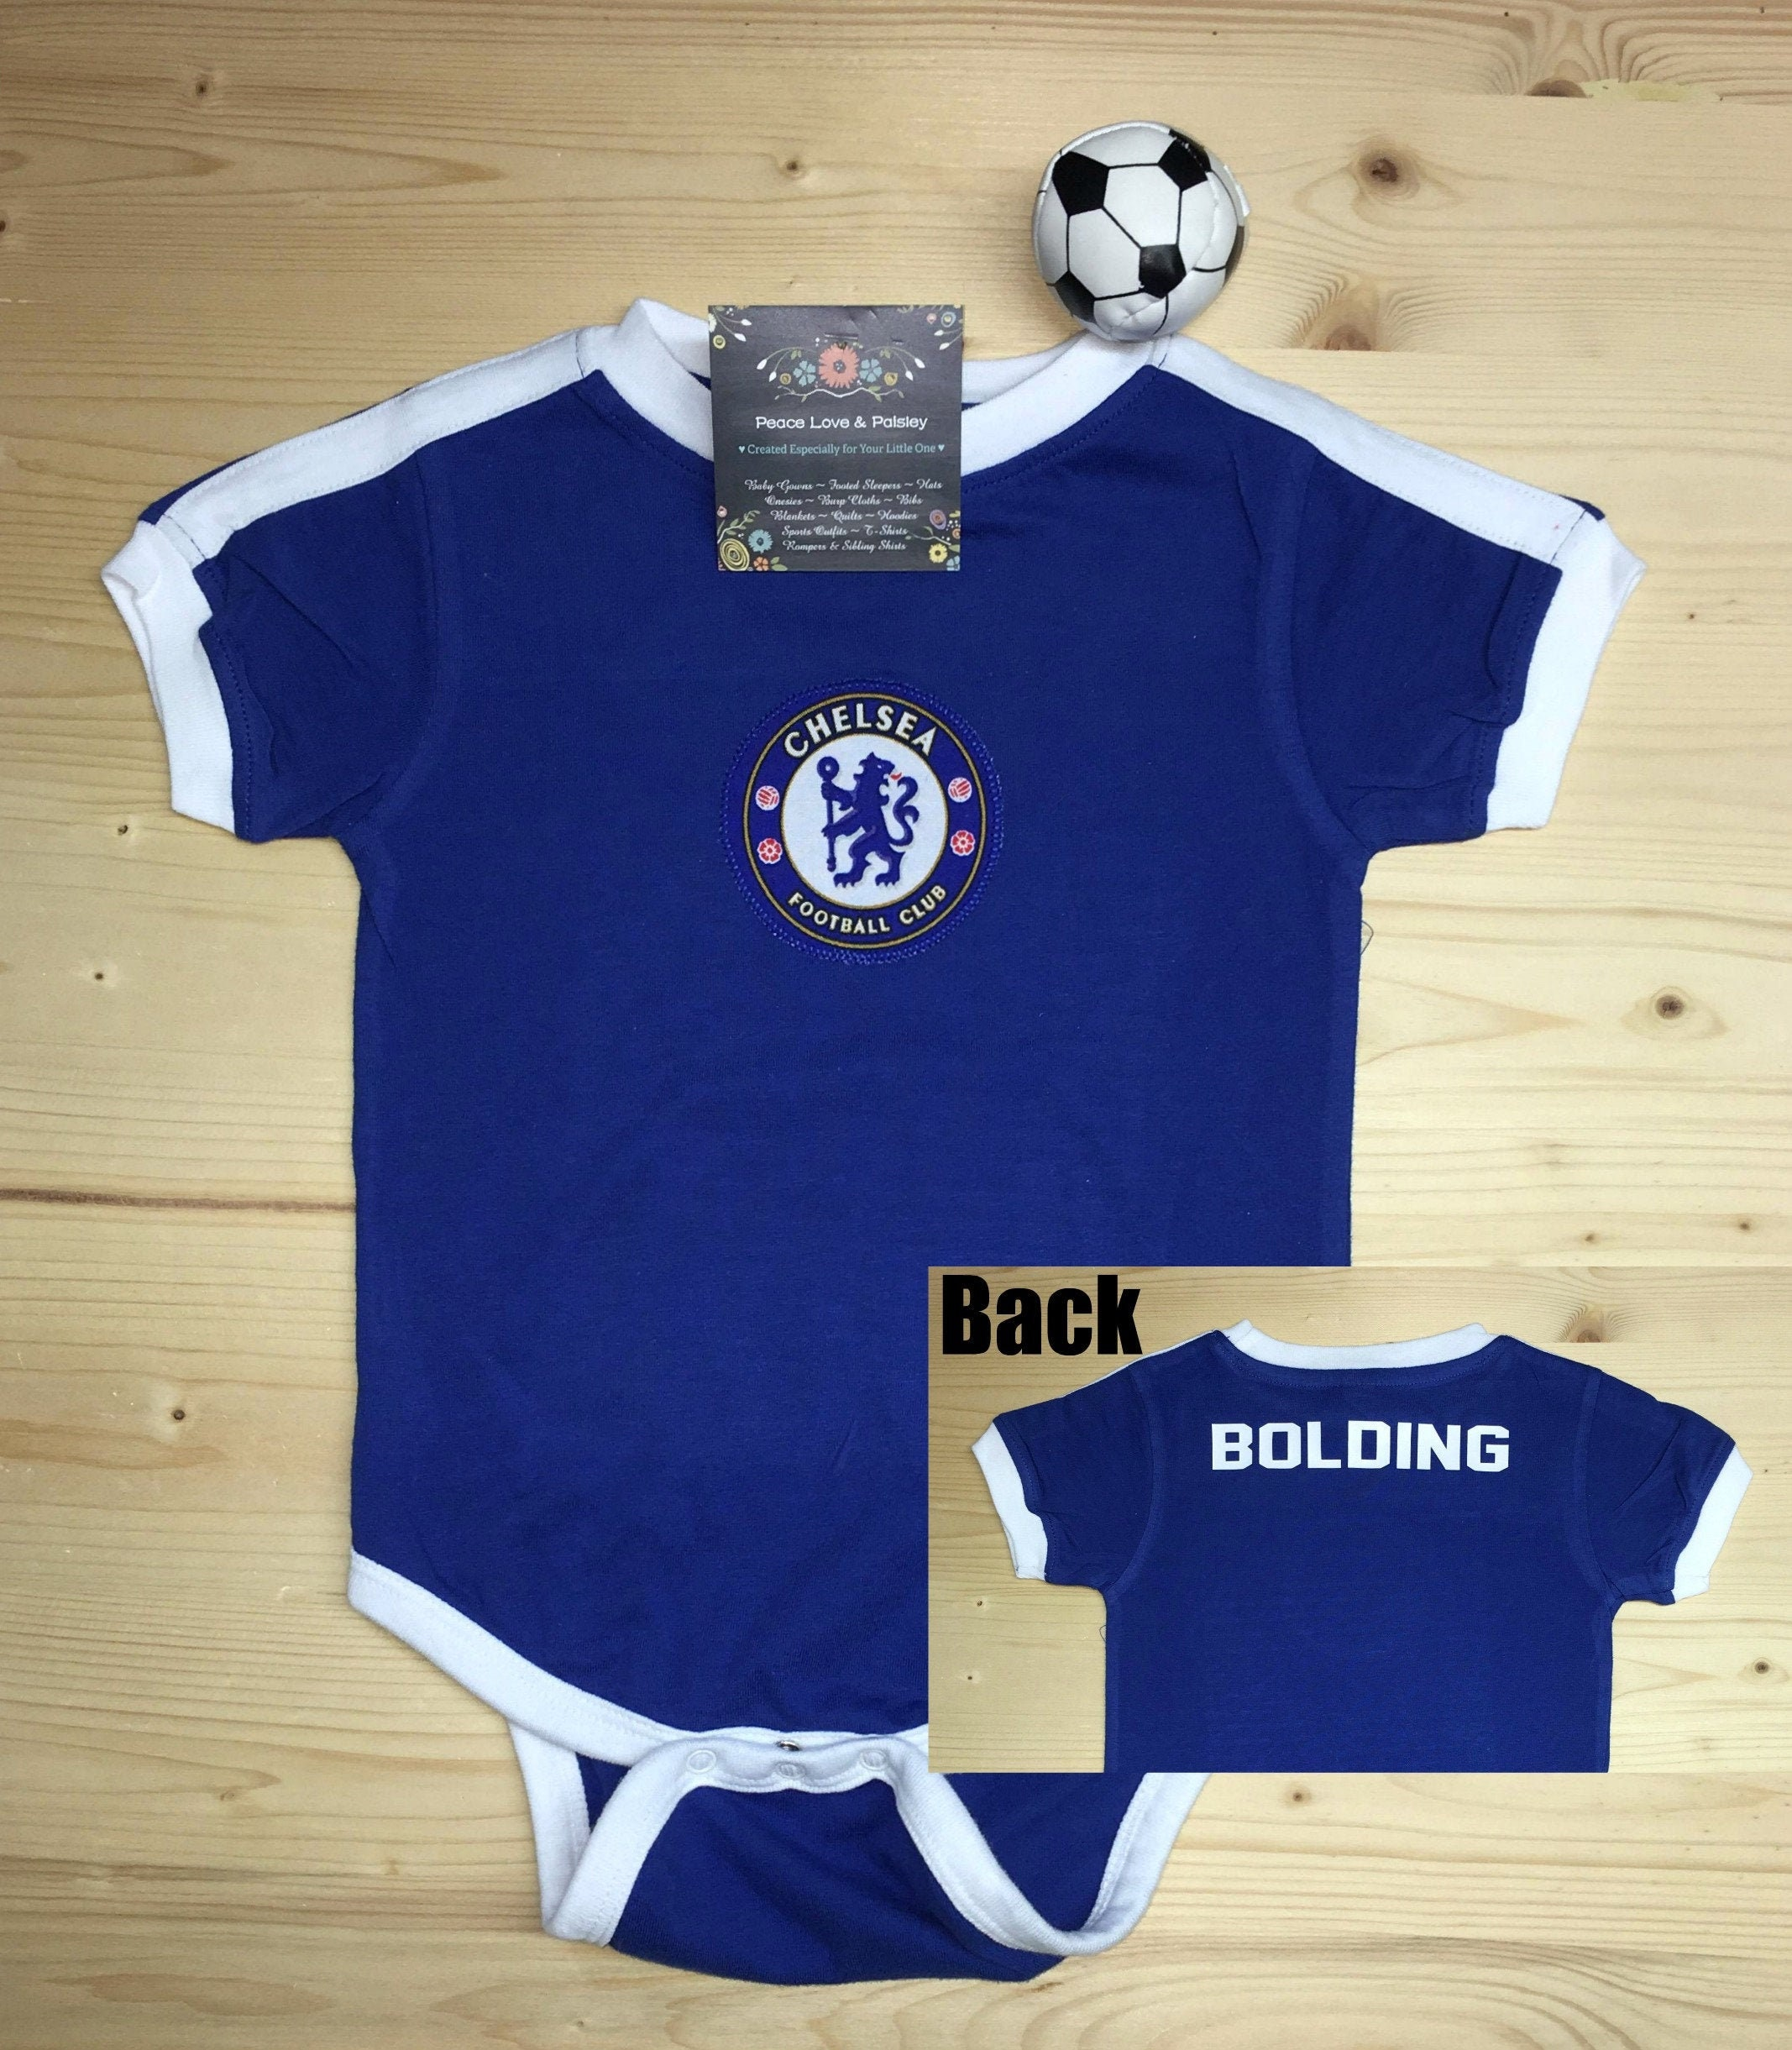 size 40 60fe3 4d3d6 Chelsea Football Club Baby Jersey, Baby Soccer Jersey, Chelsea FC Baby,  Lions Baby, Personalized Baby Soccer Jersey, Chelsea Baby Gift